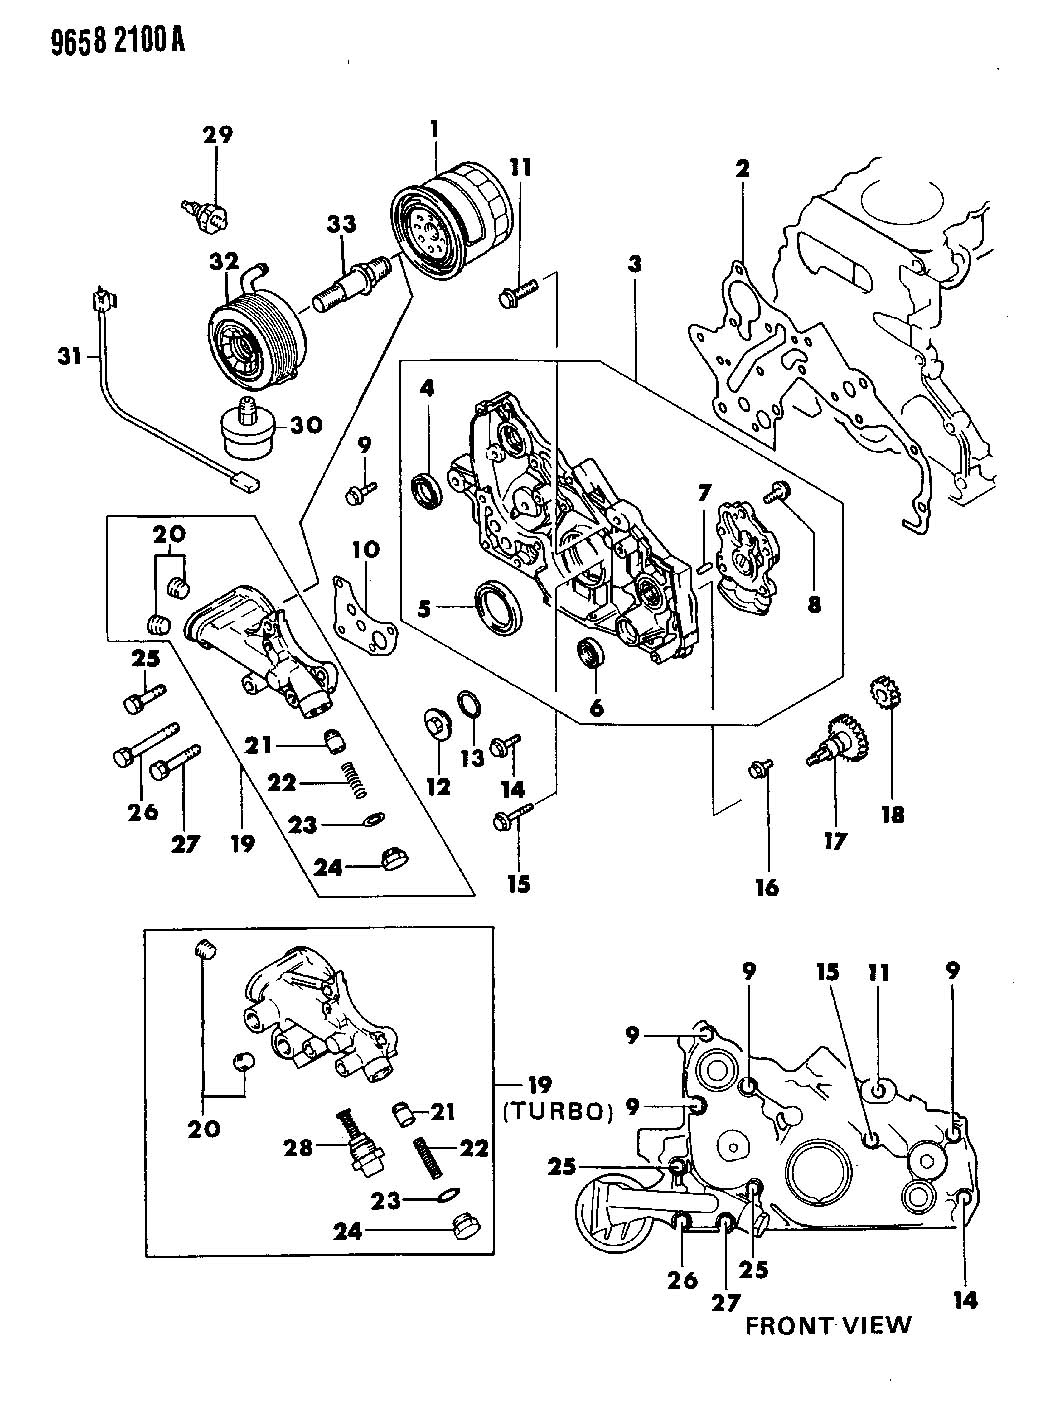 1993 buick roadmaster wiring diagram